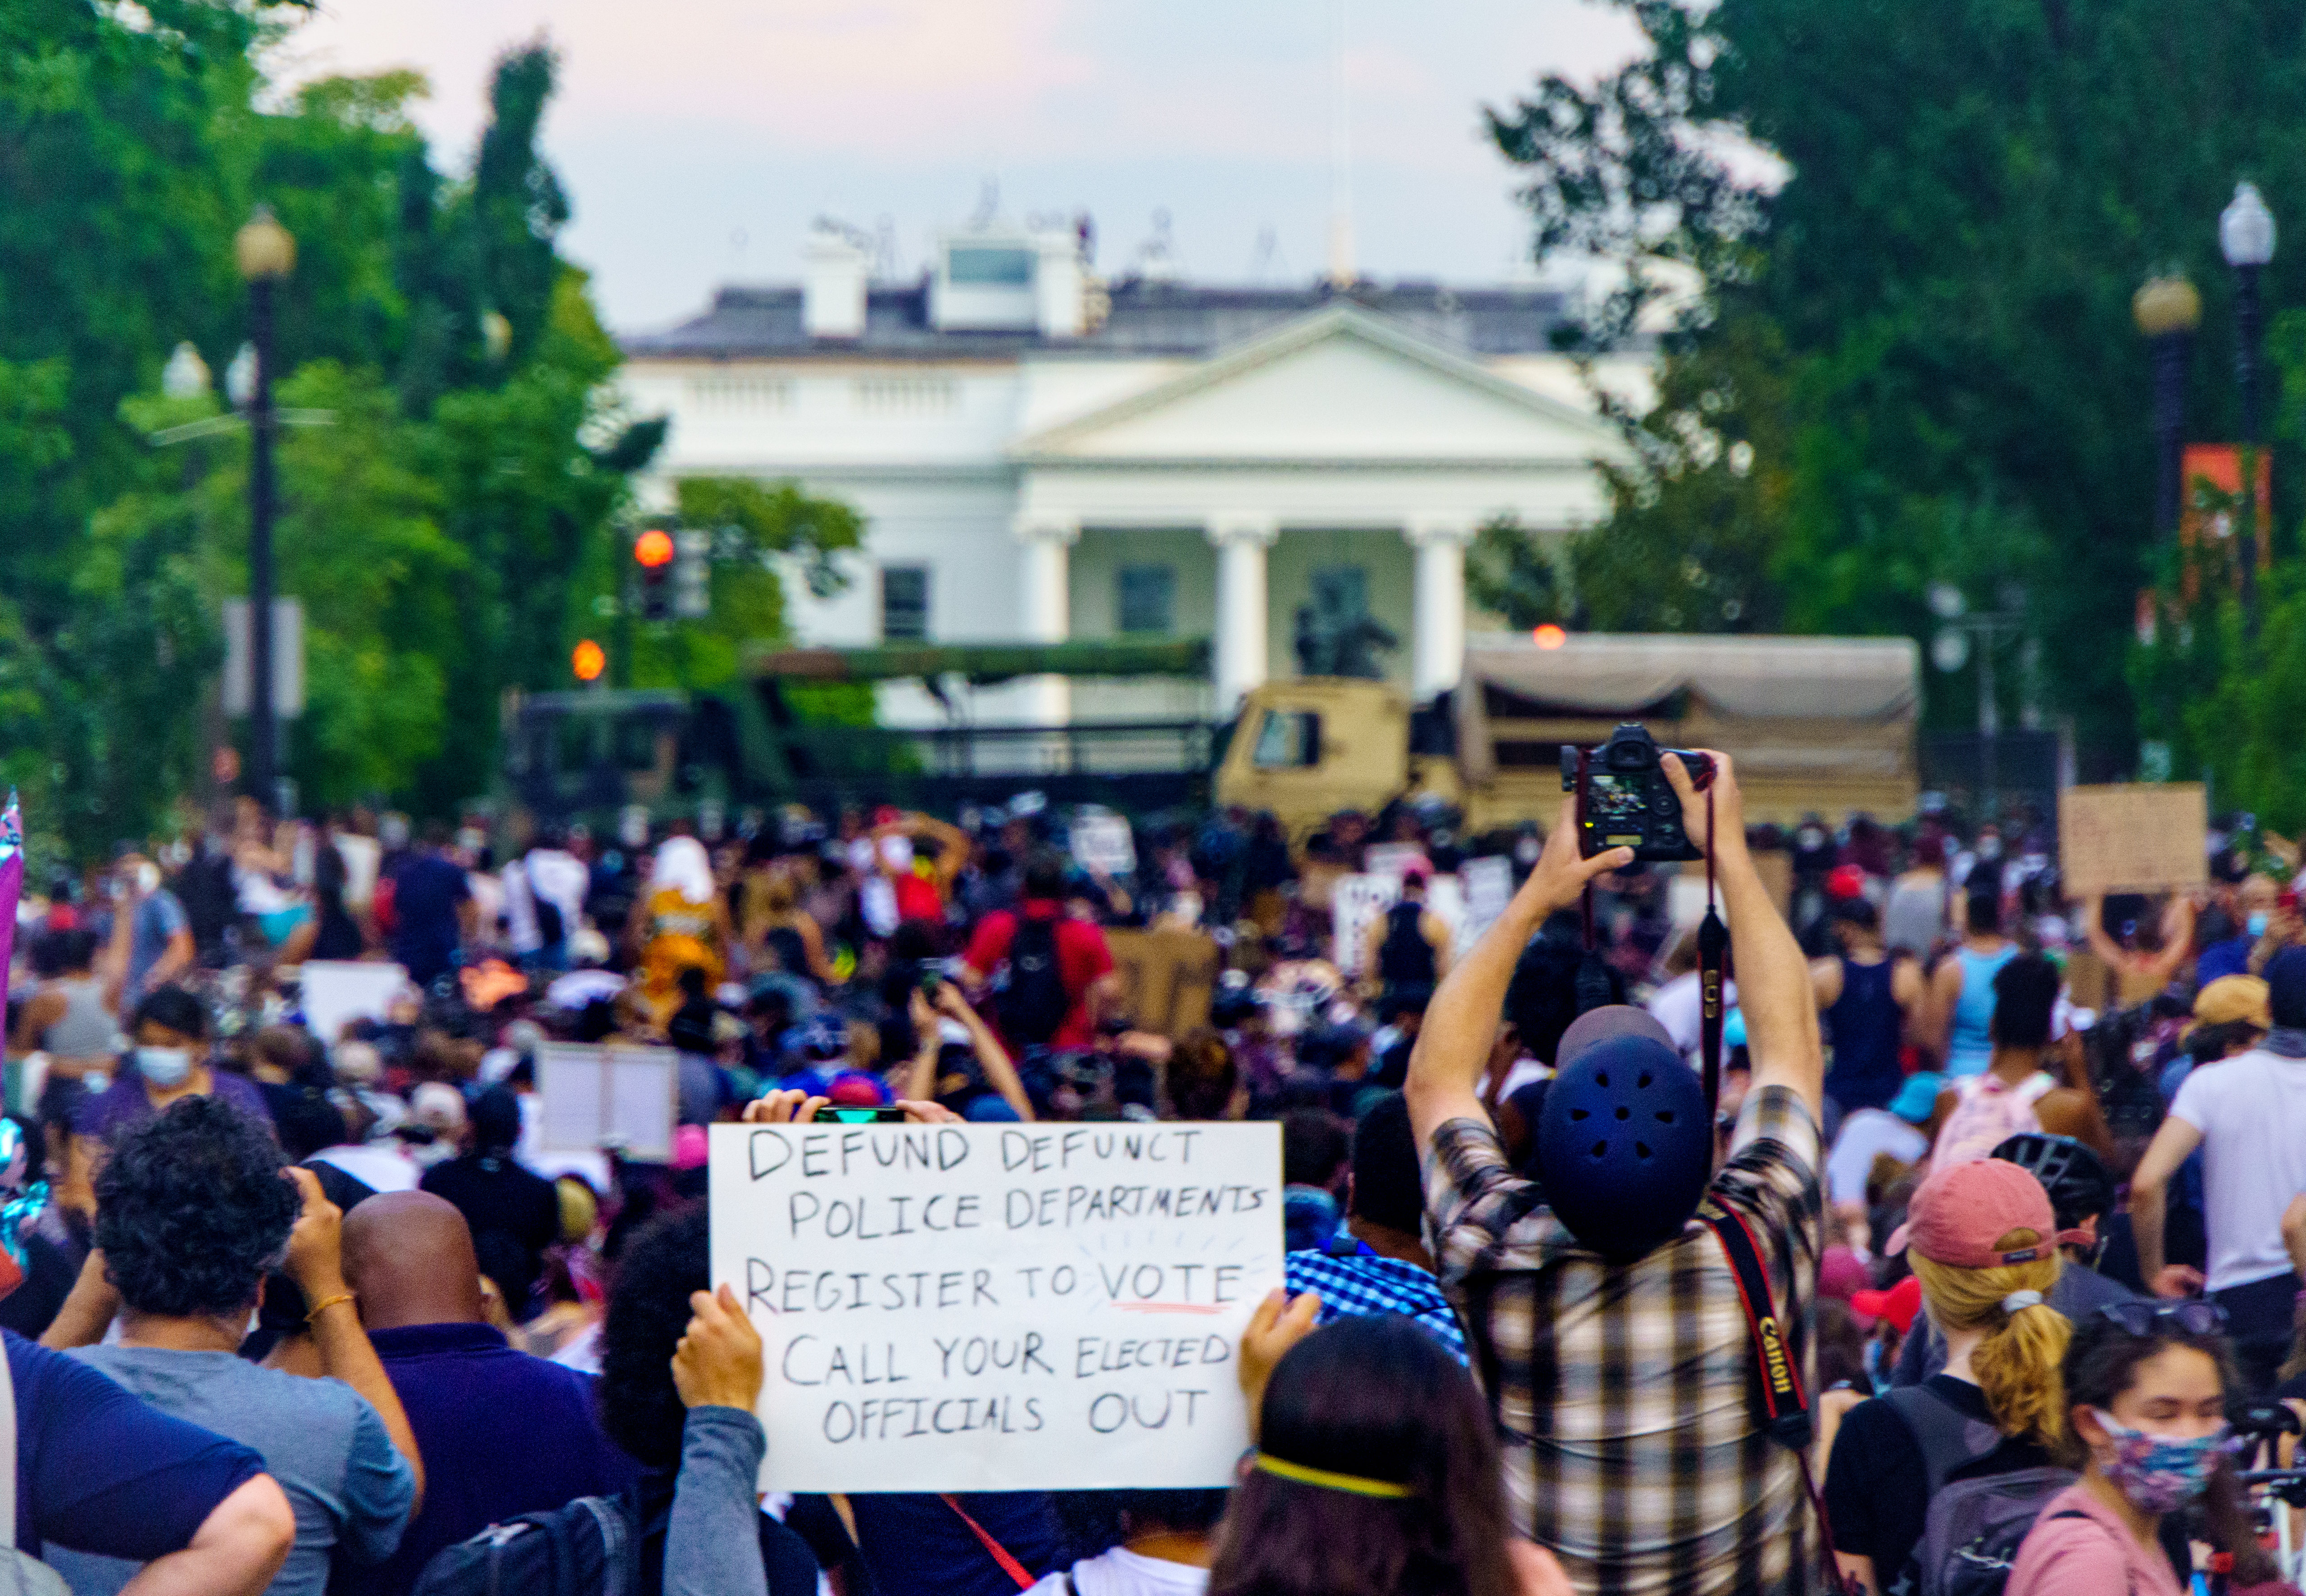 Peaceful protesters crowd in front of the White House.